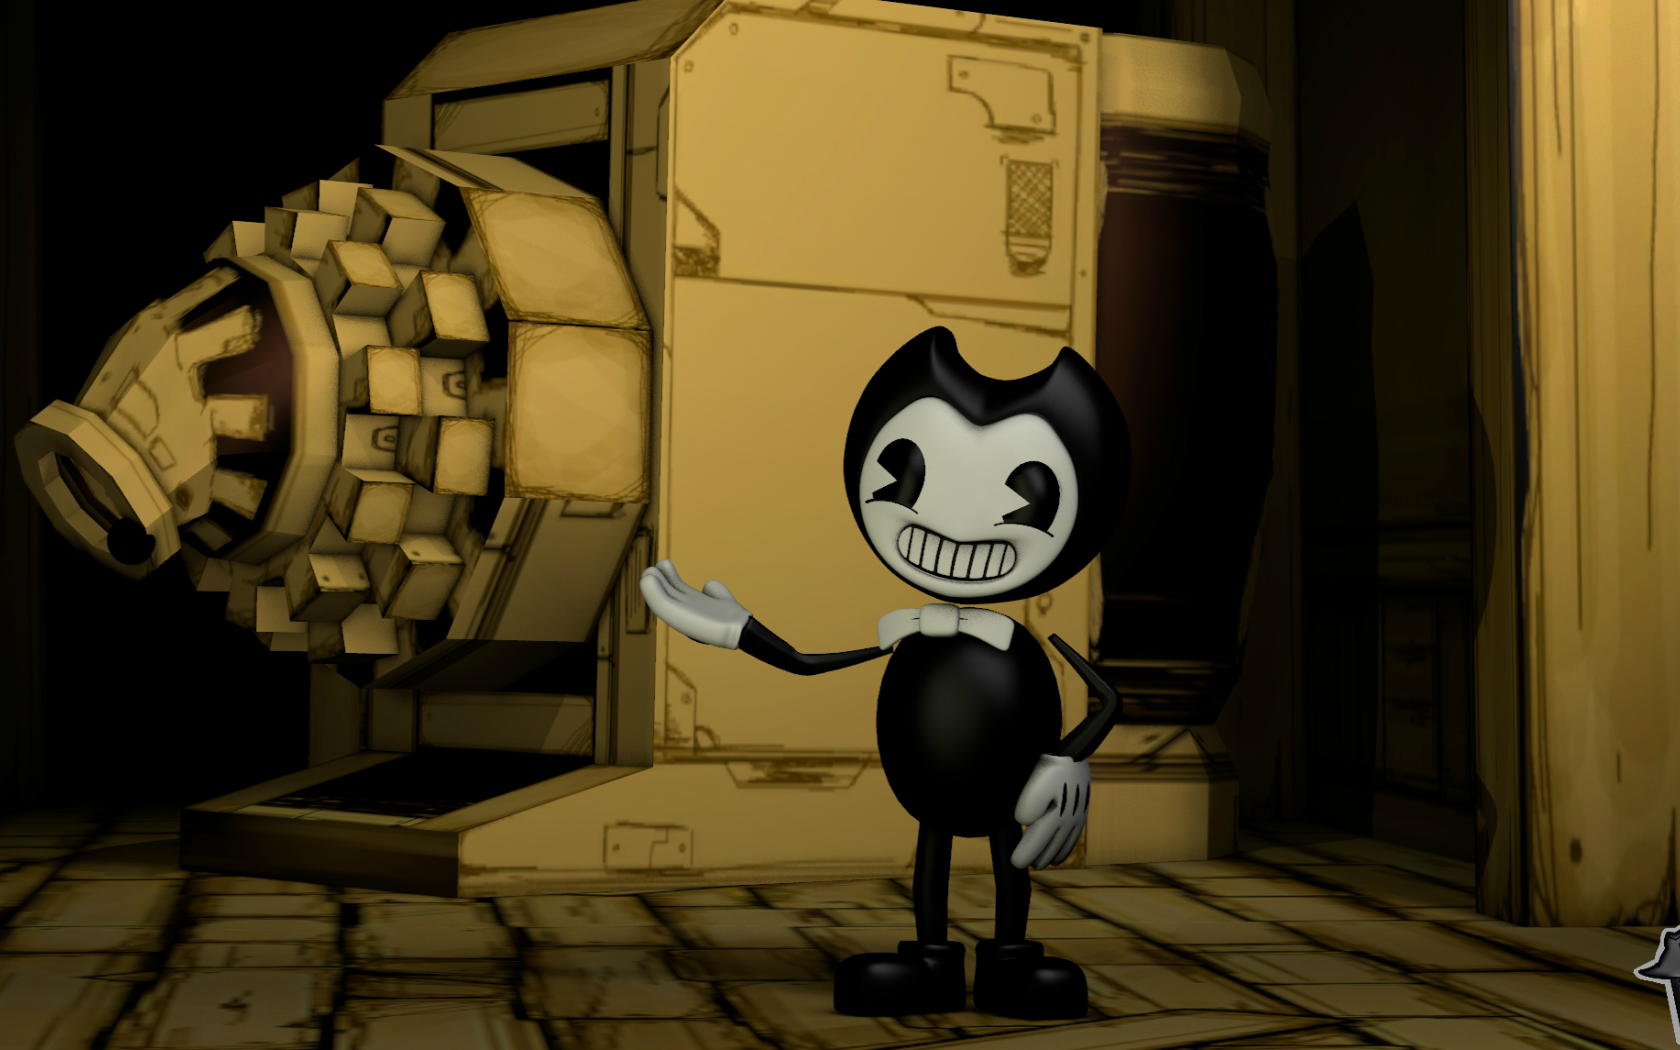 Free Download Bendy And The Ink Machine Full Hd Wallpaper And